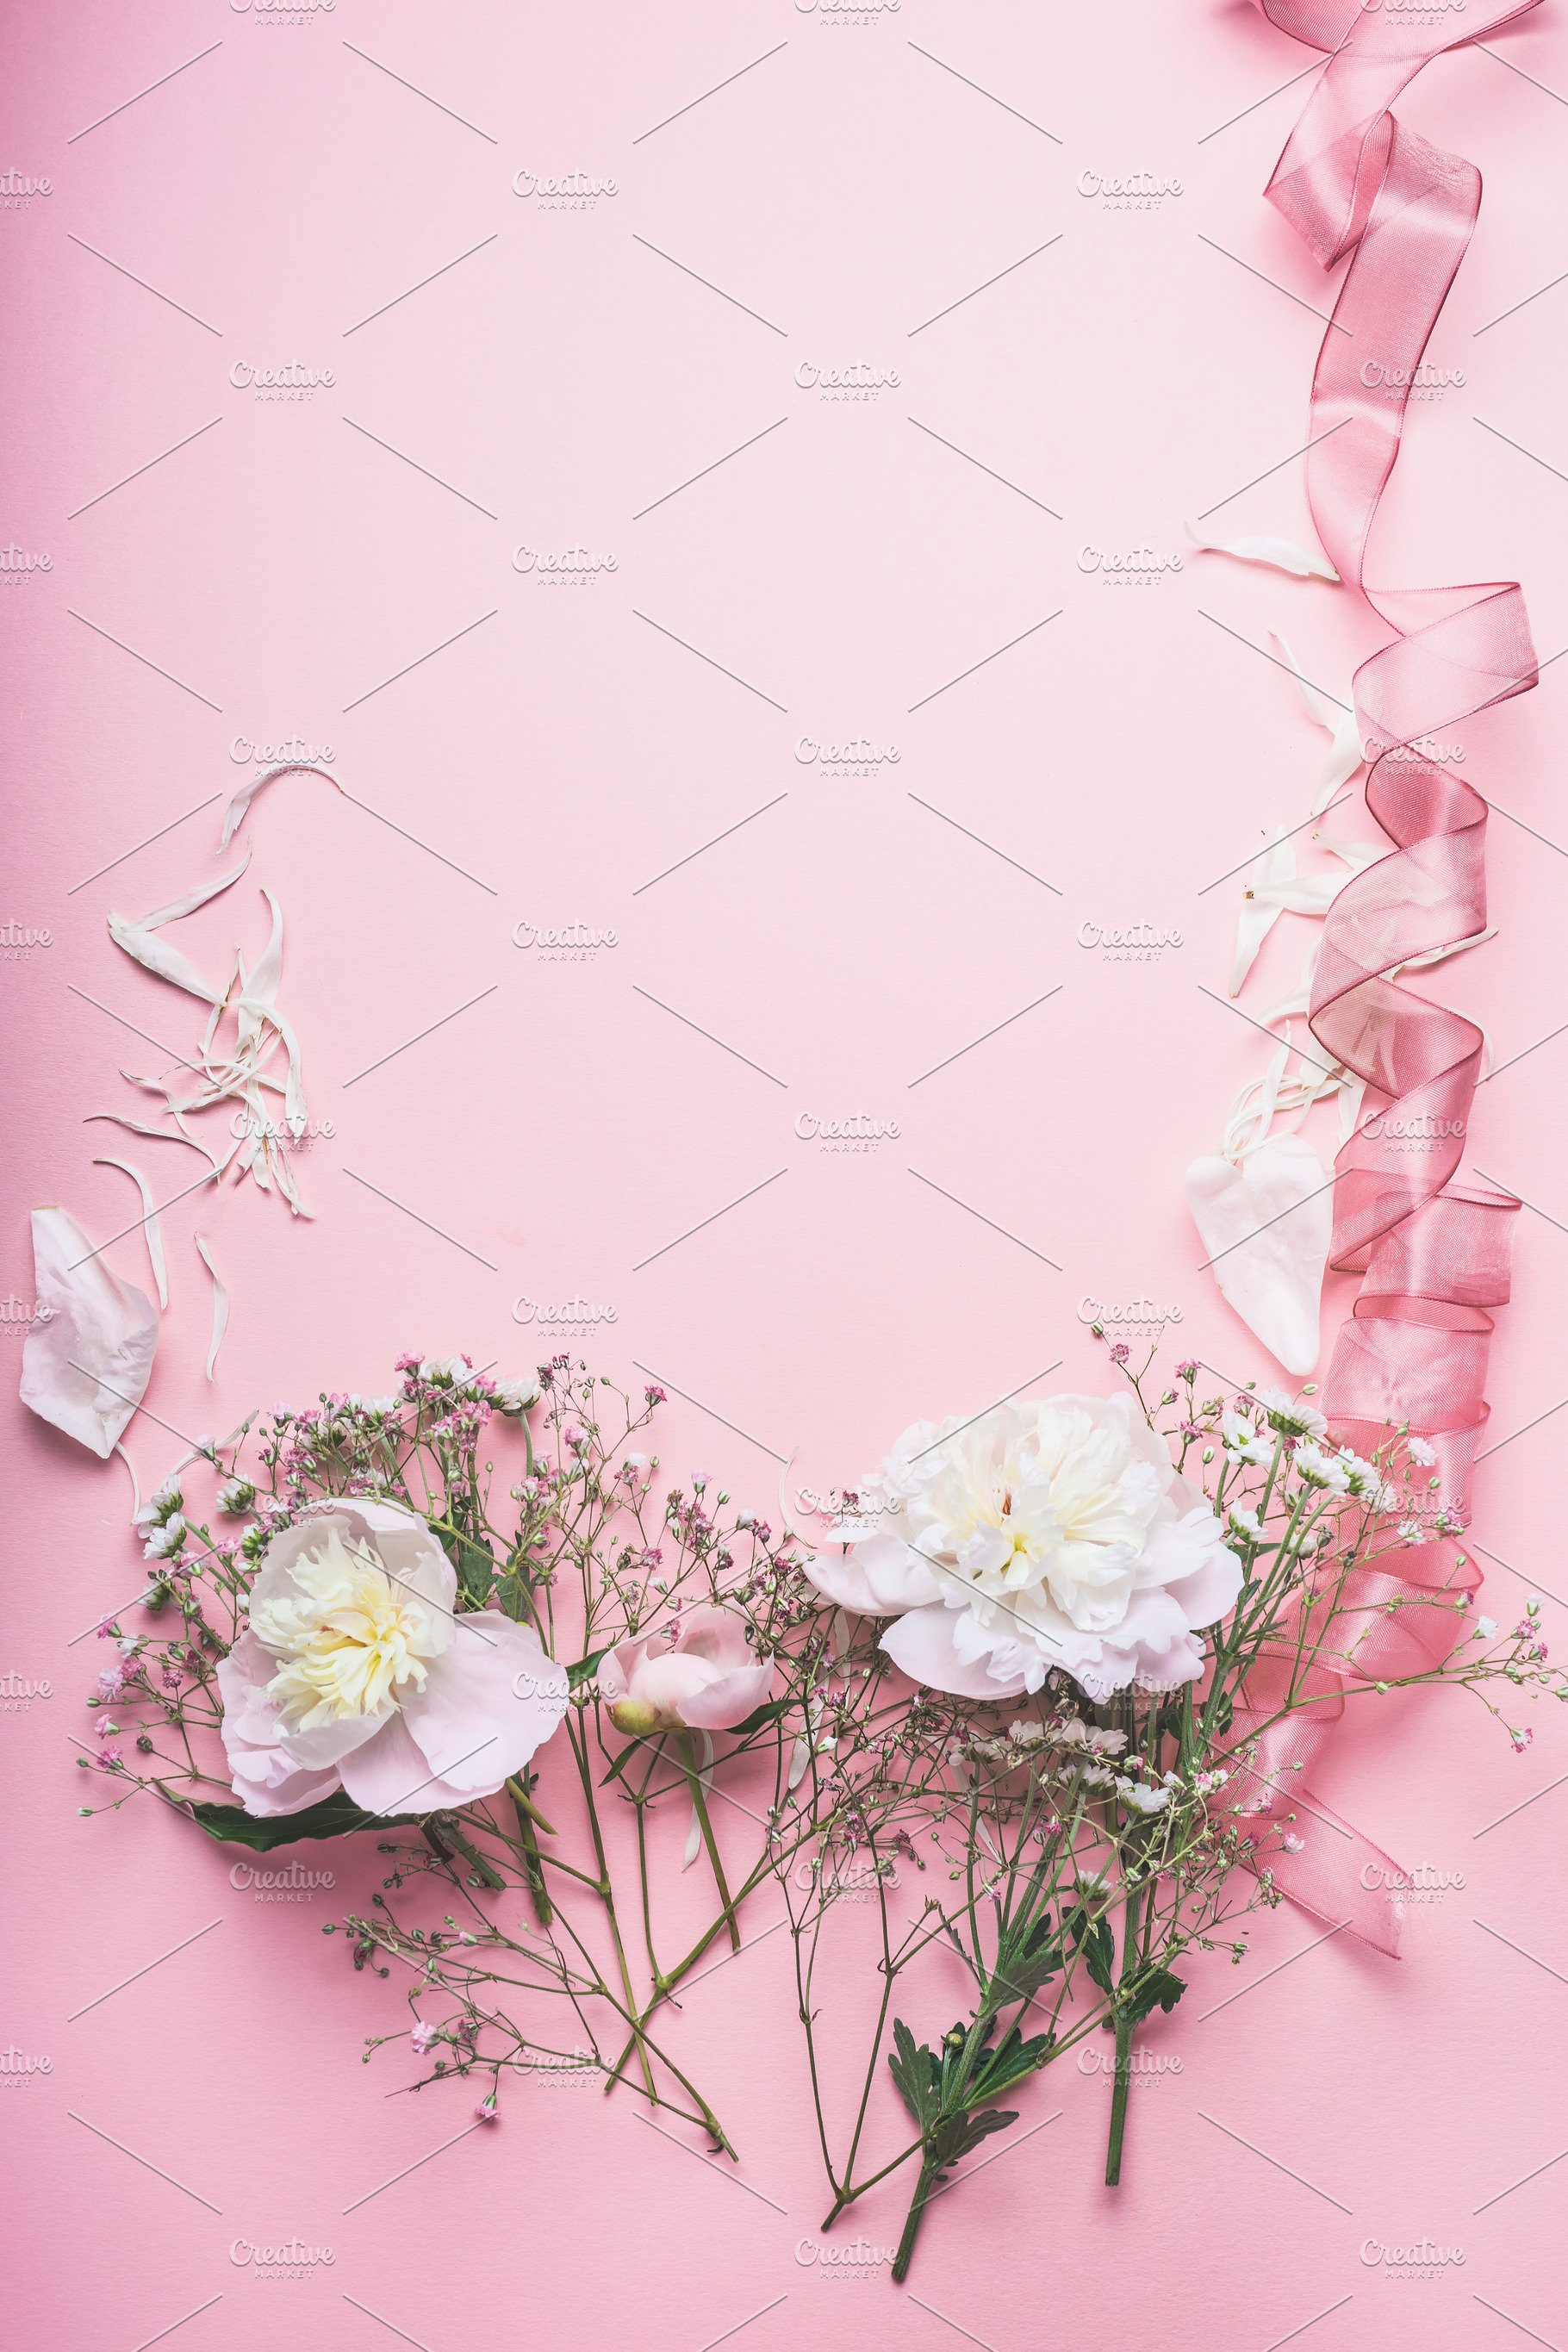 Pastel Pink Floral Background High Quality Arts Entertainment